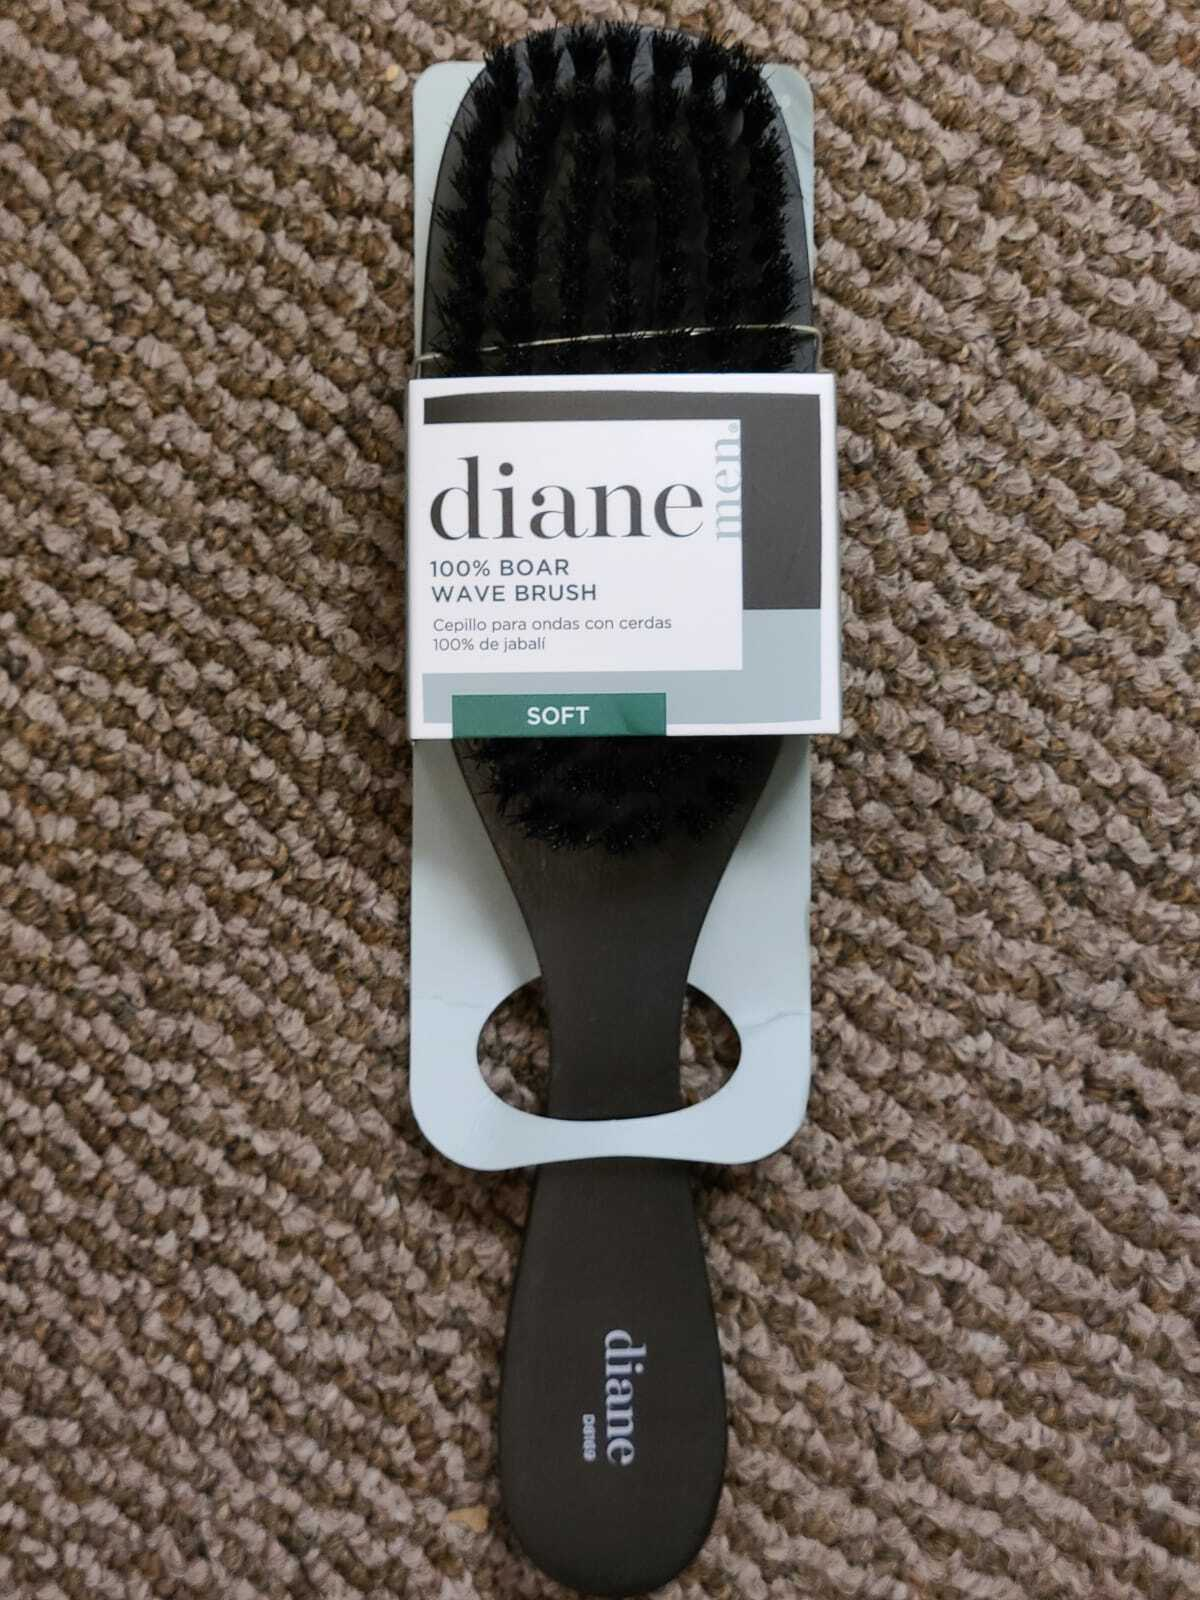 Diane 100% boar wave brush SOFT  * FREE SHIPPING*